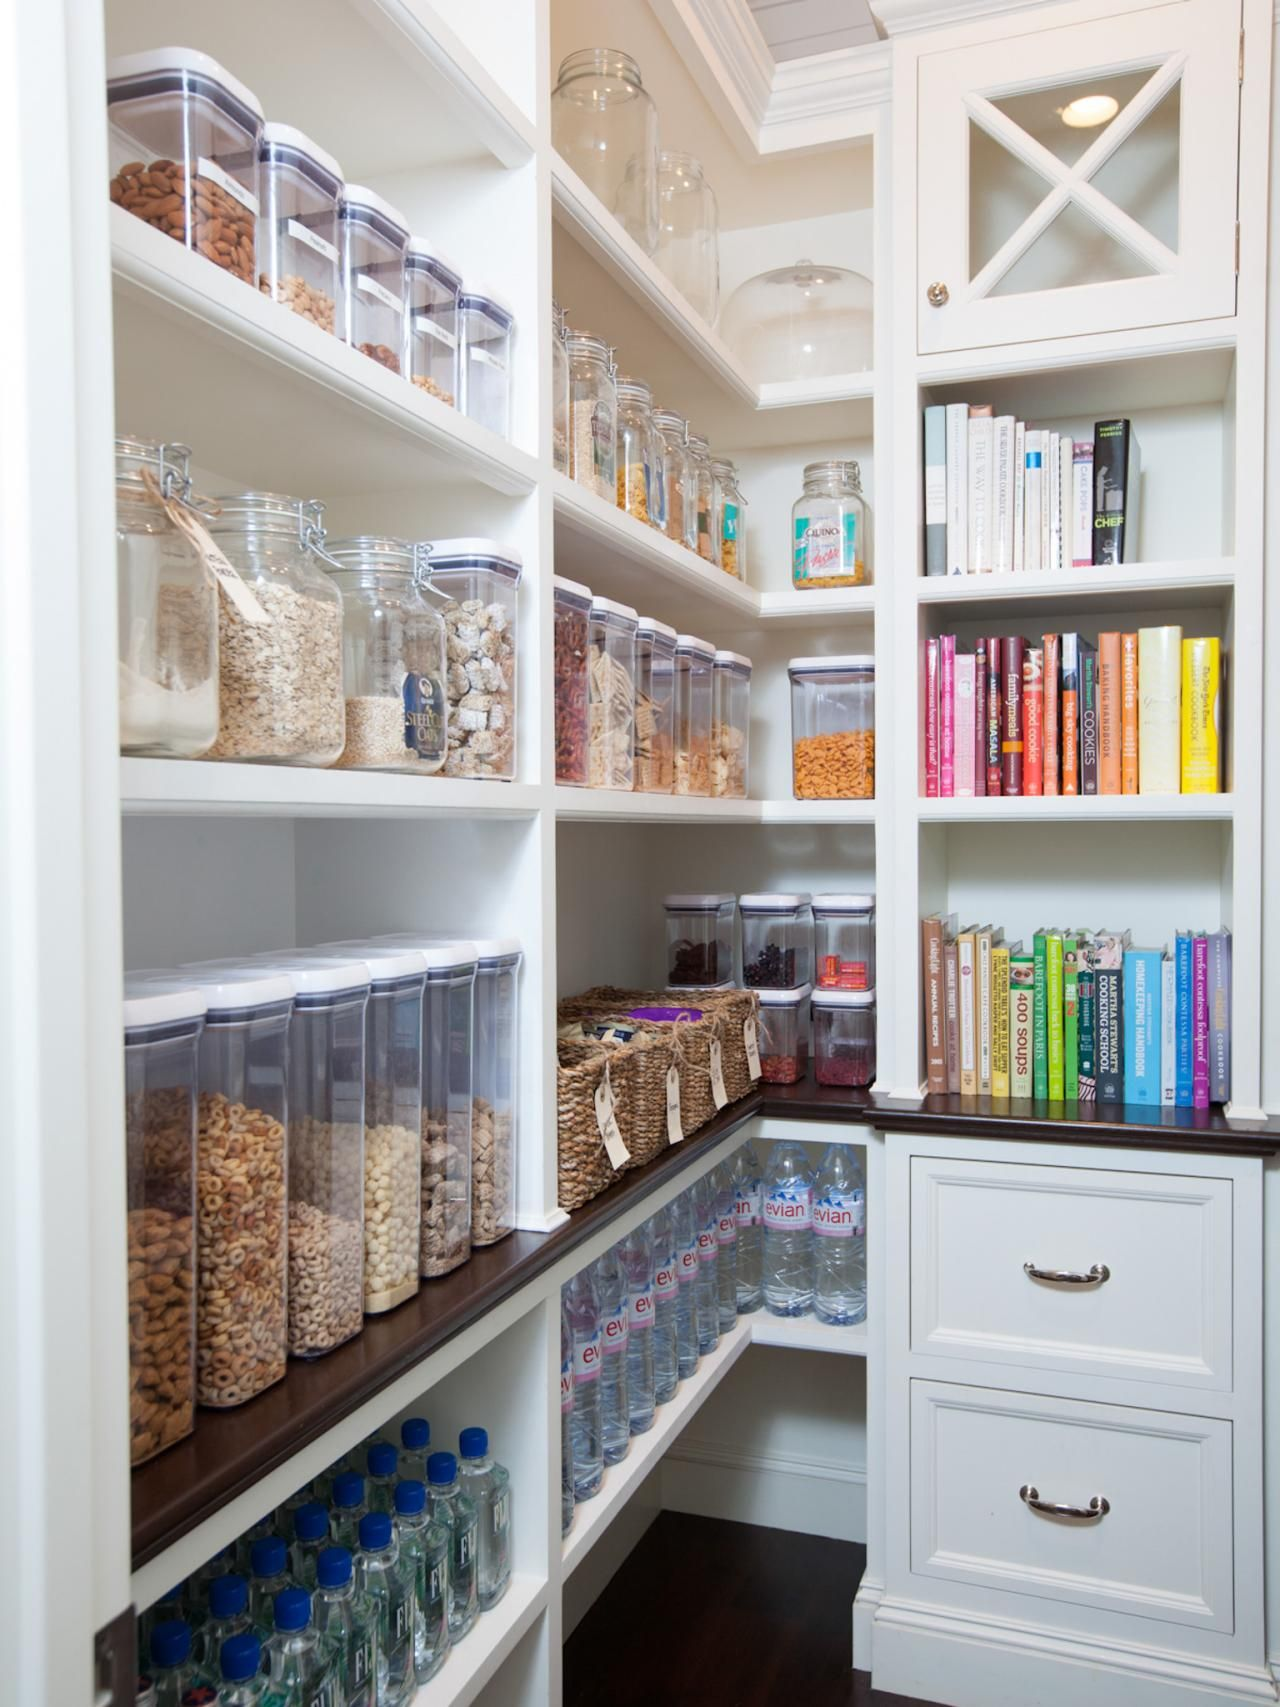 10 Quick Tips for a Picture-Perfect Pantry | Pinterest | Aufräumen ...